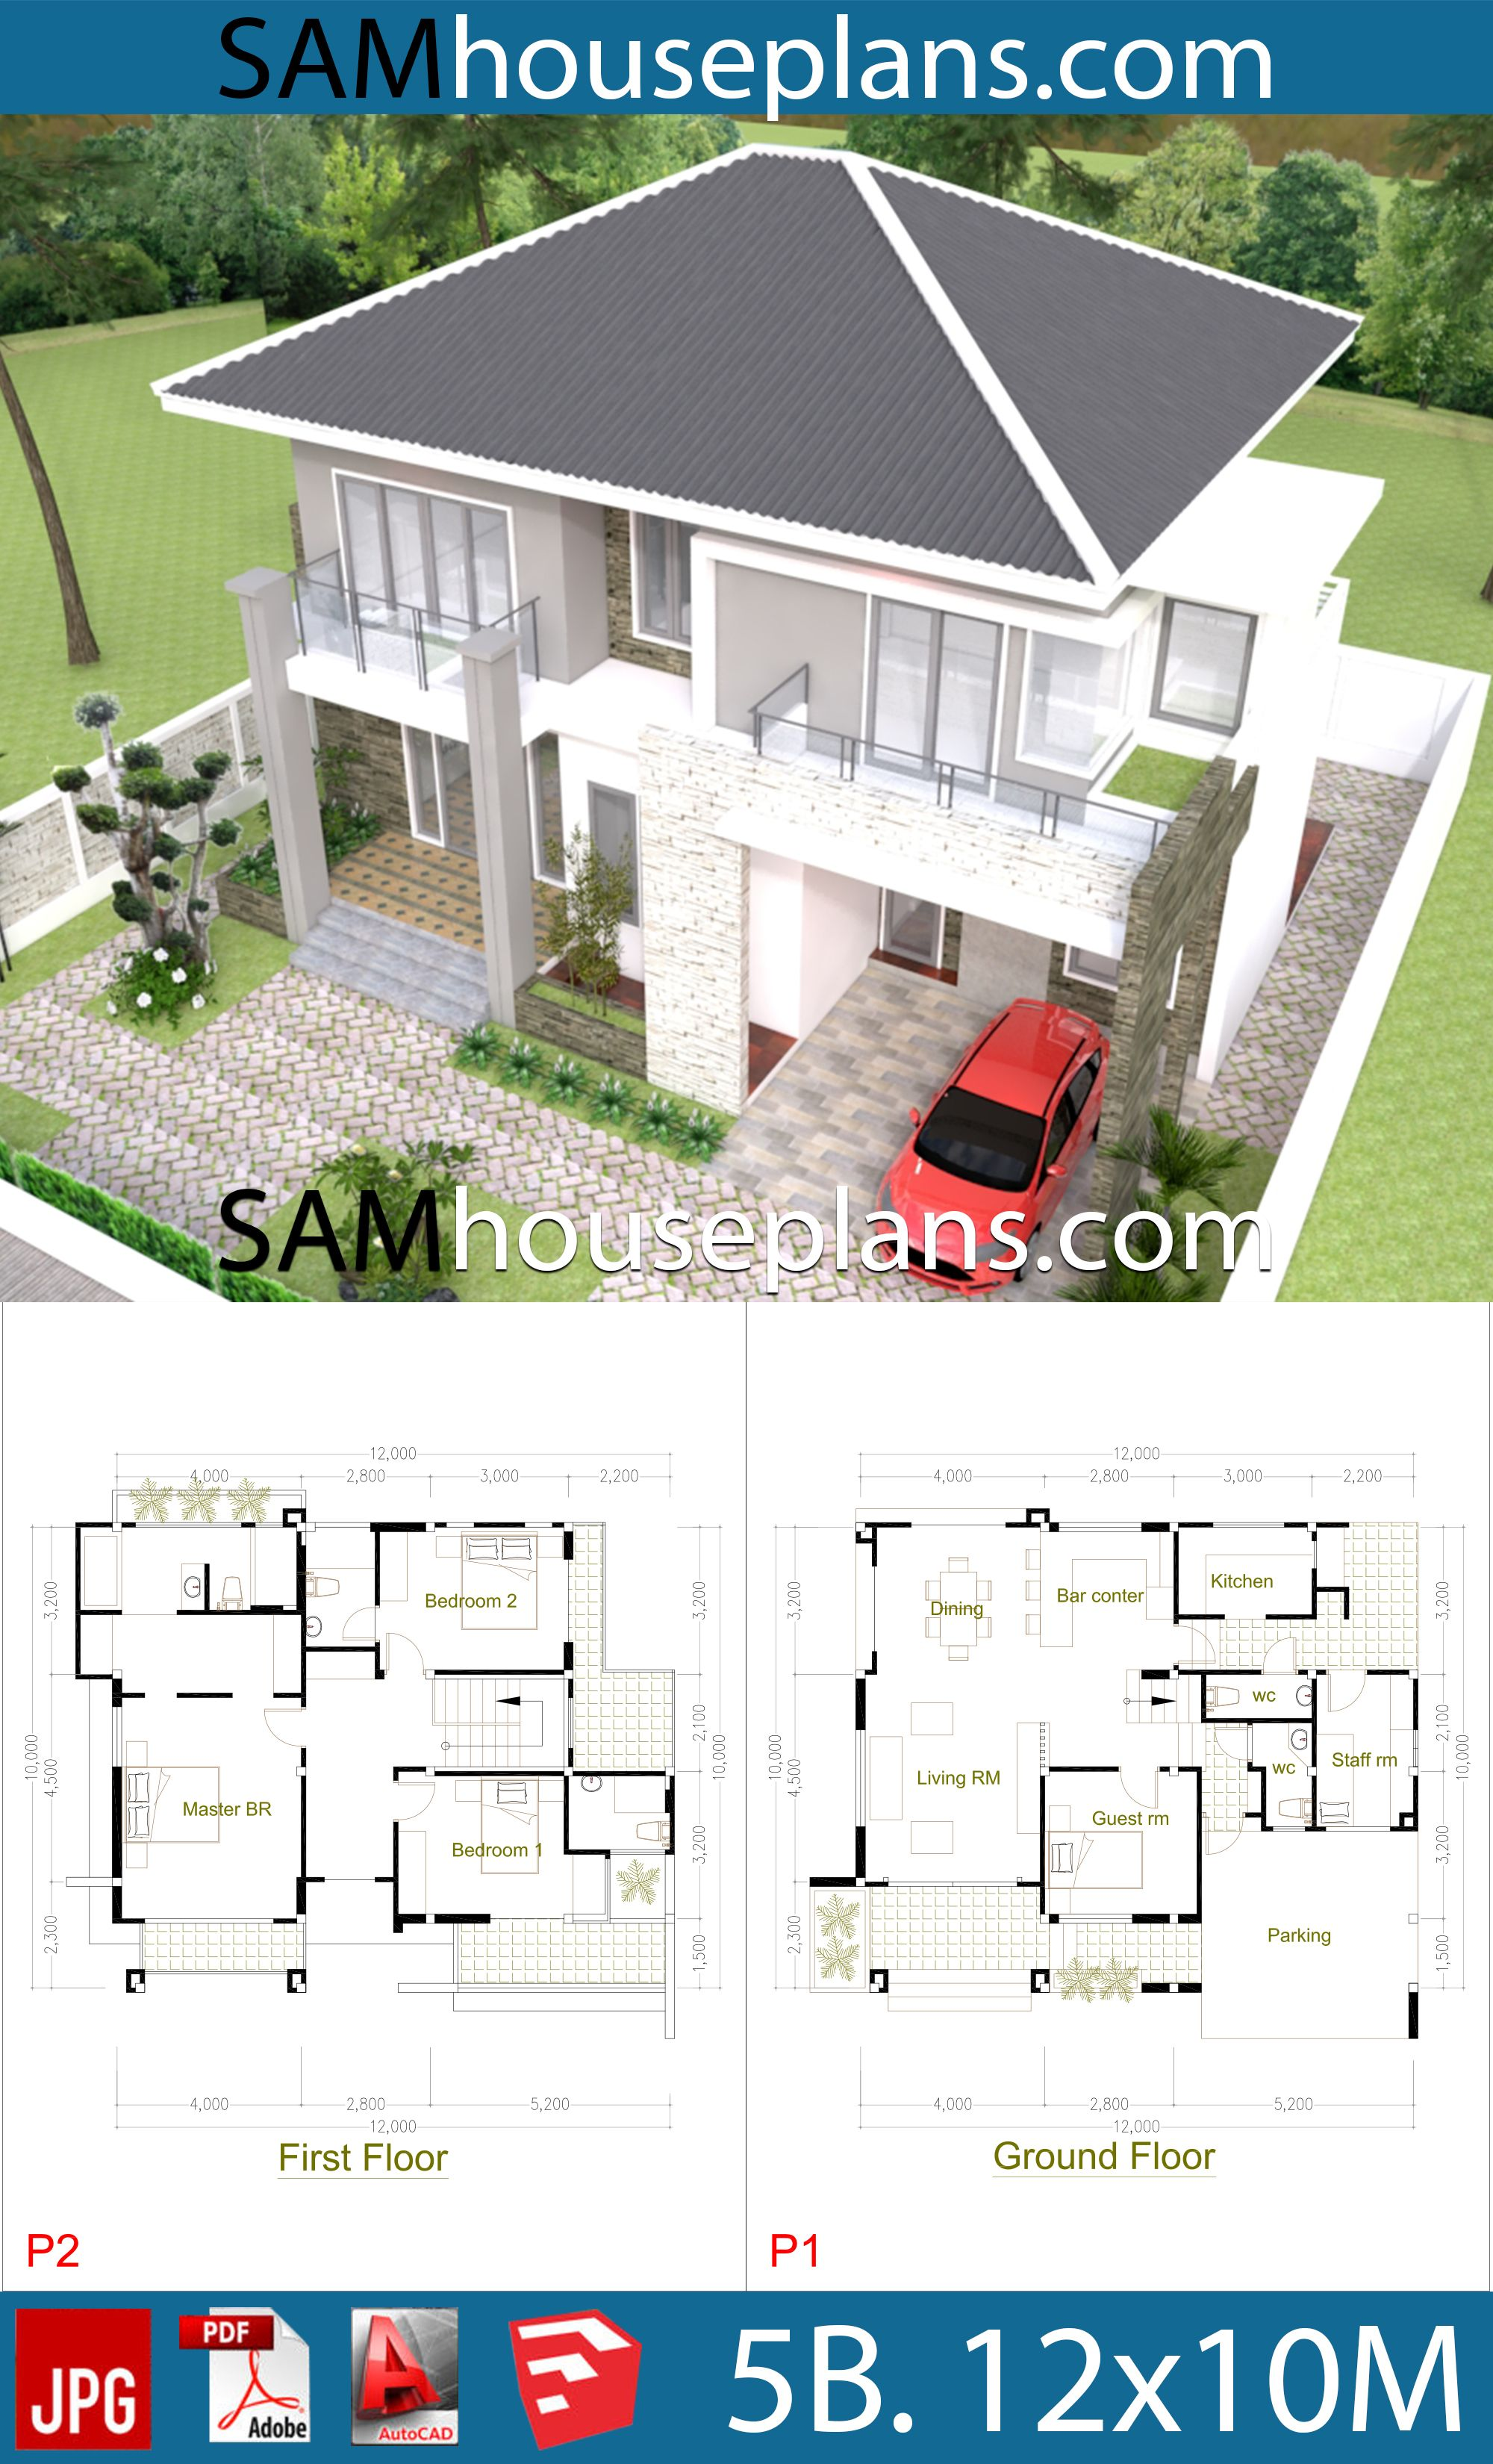 House Plans 12x10 With 5 Bedrooms House Plans Free Downloads Mansion Floor Plan Bedroom House Plans Model House Plan